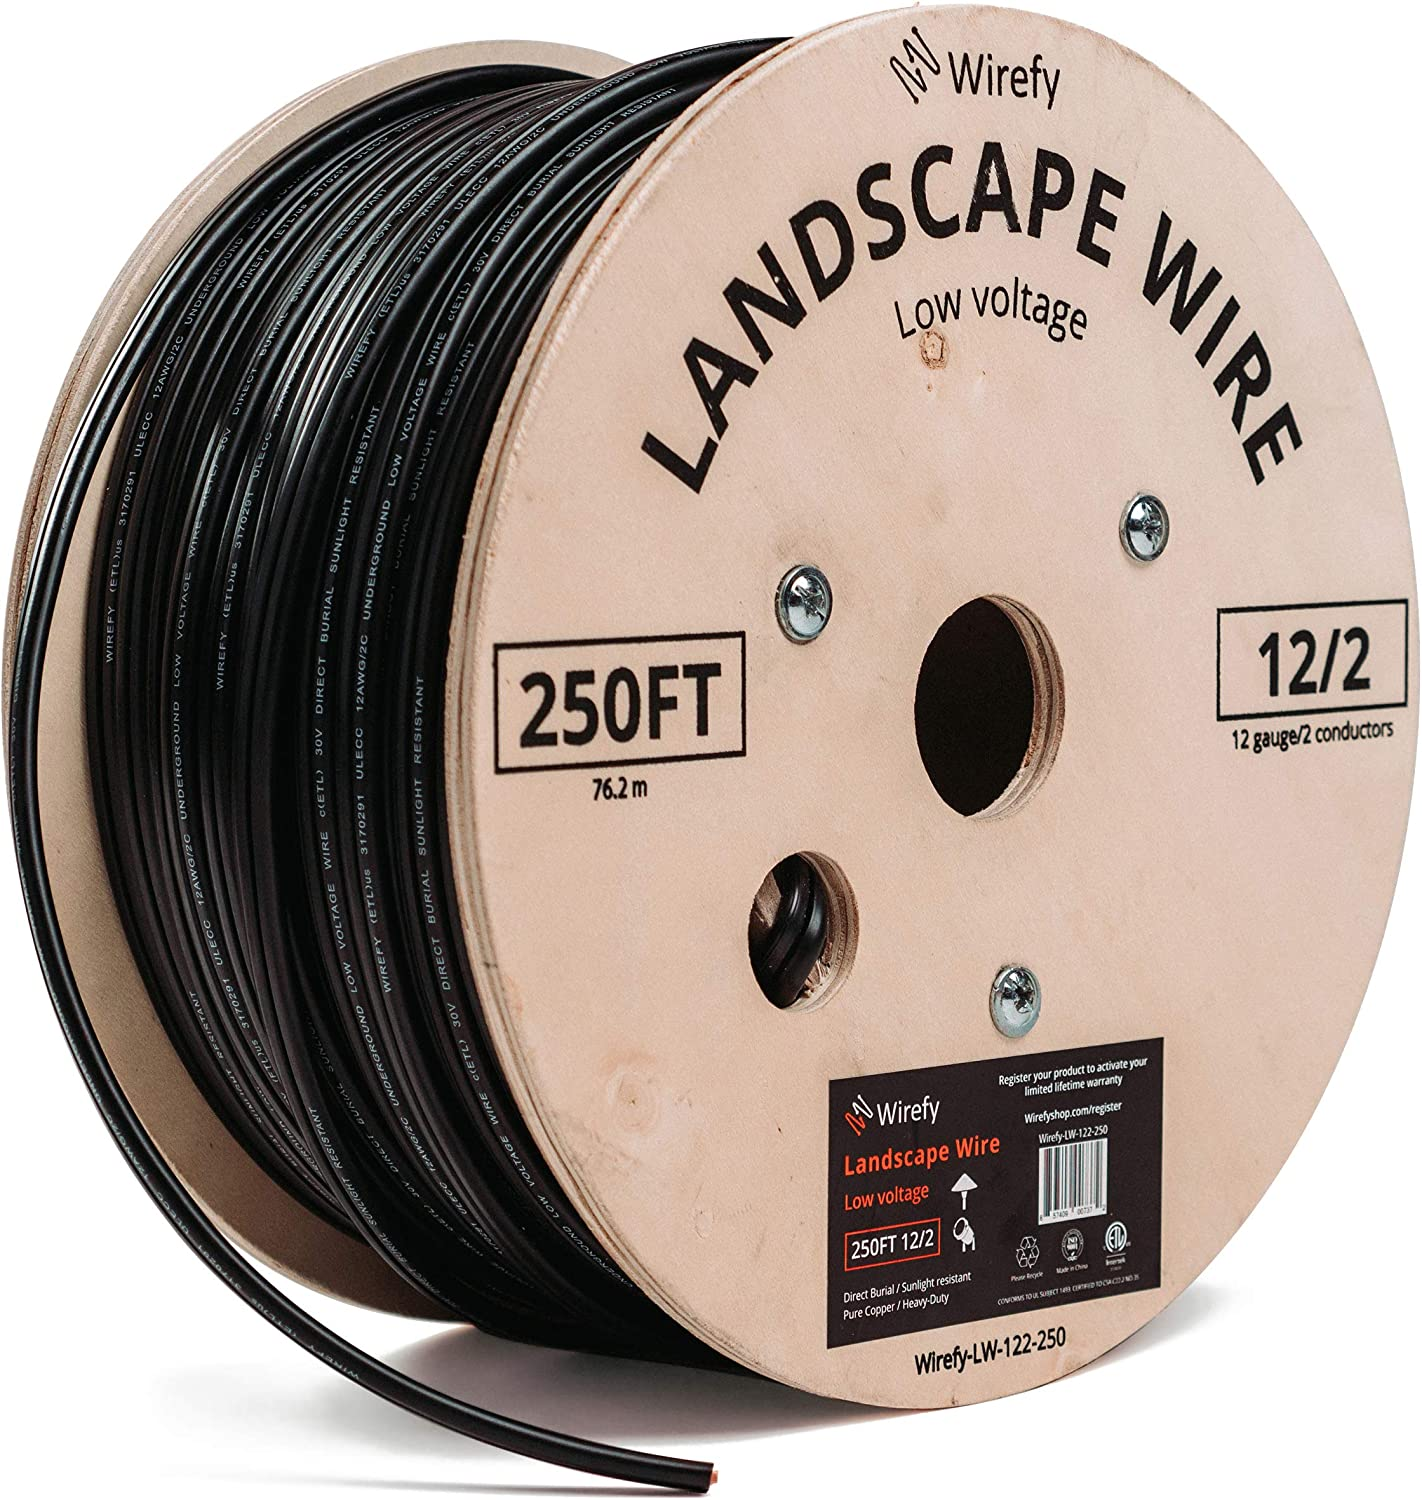 Wirefy 12/2 Low Voltage Landscape Lighting Wire - Outdoor Direct Burial - 12-Gauge 2-Conductor 250 Feet